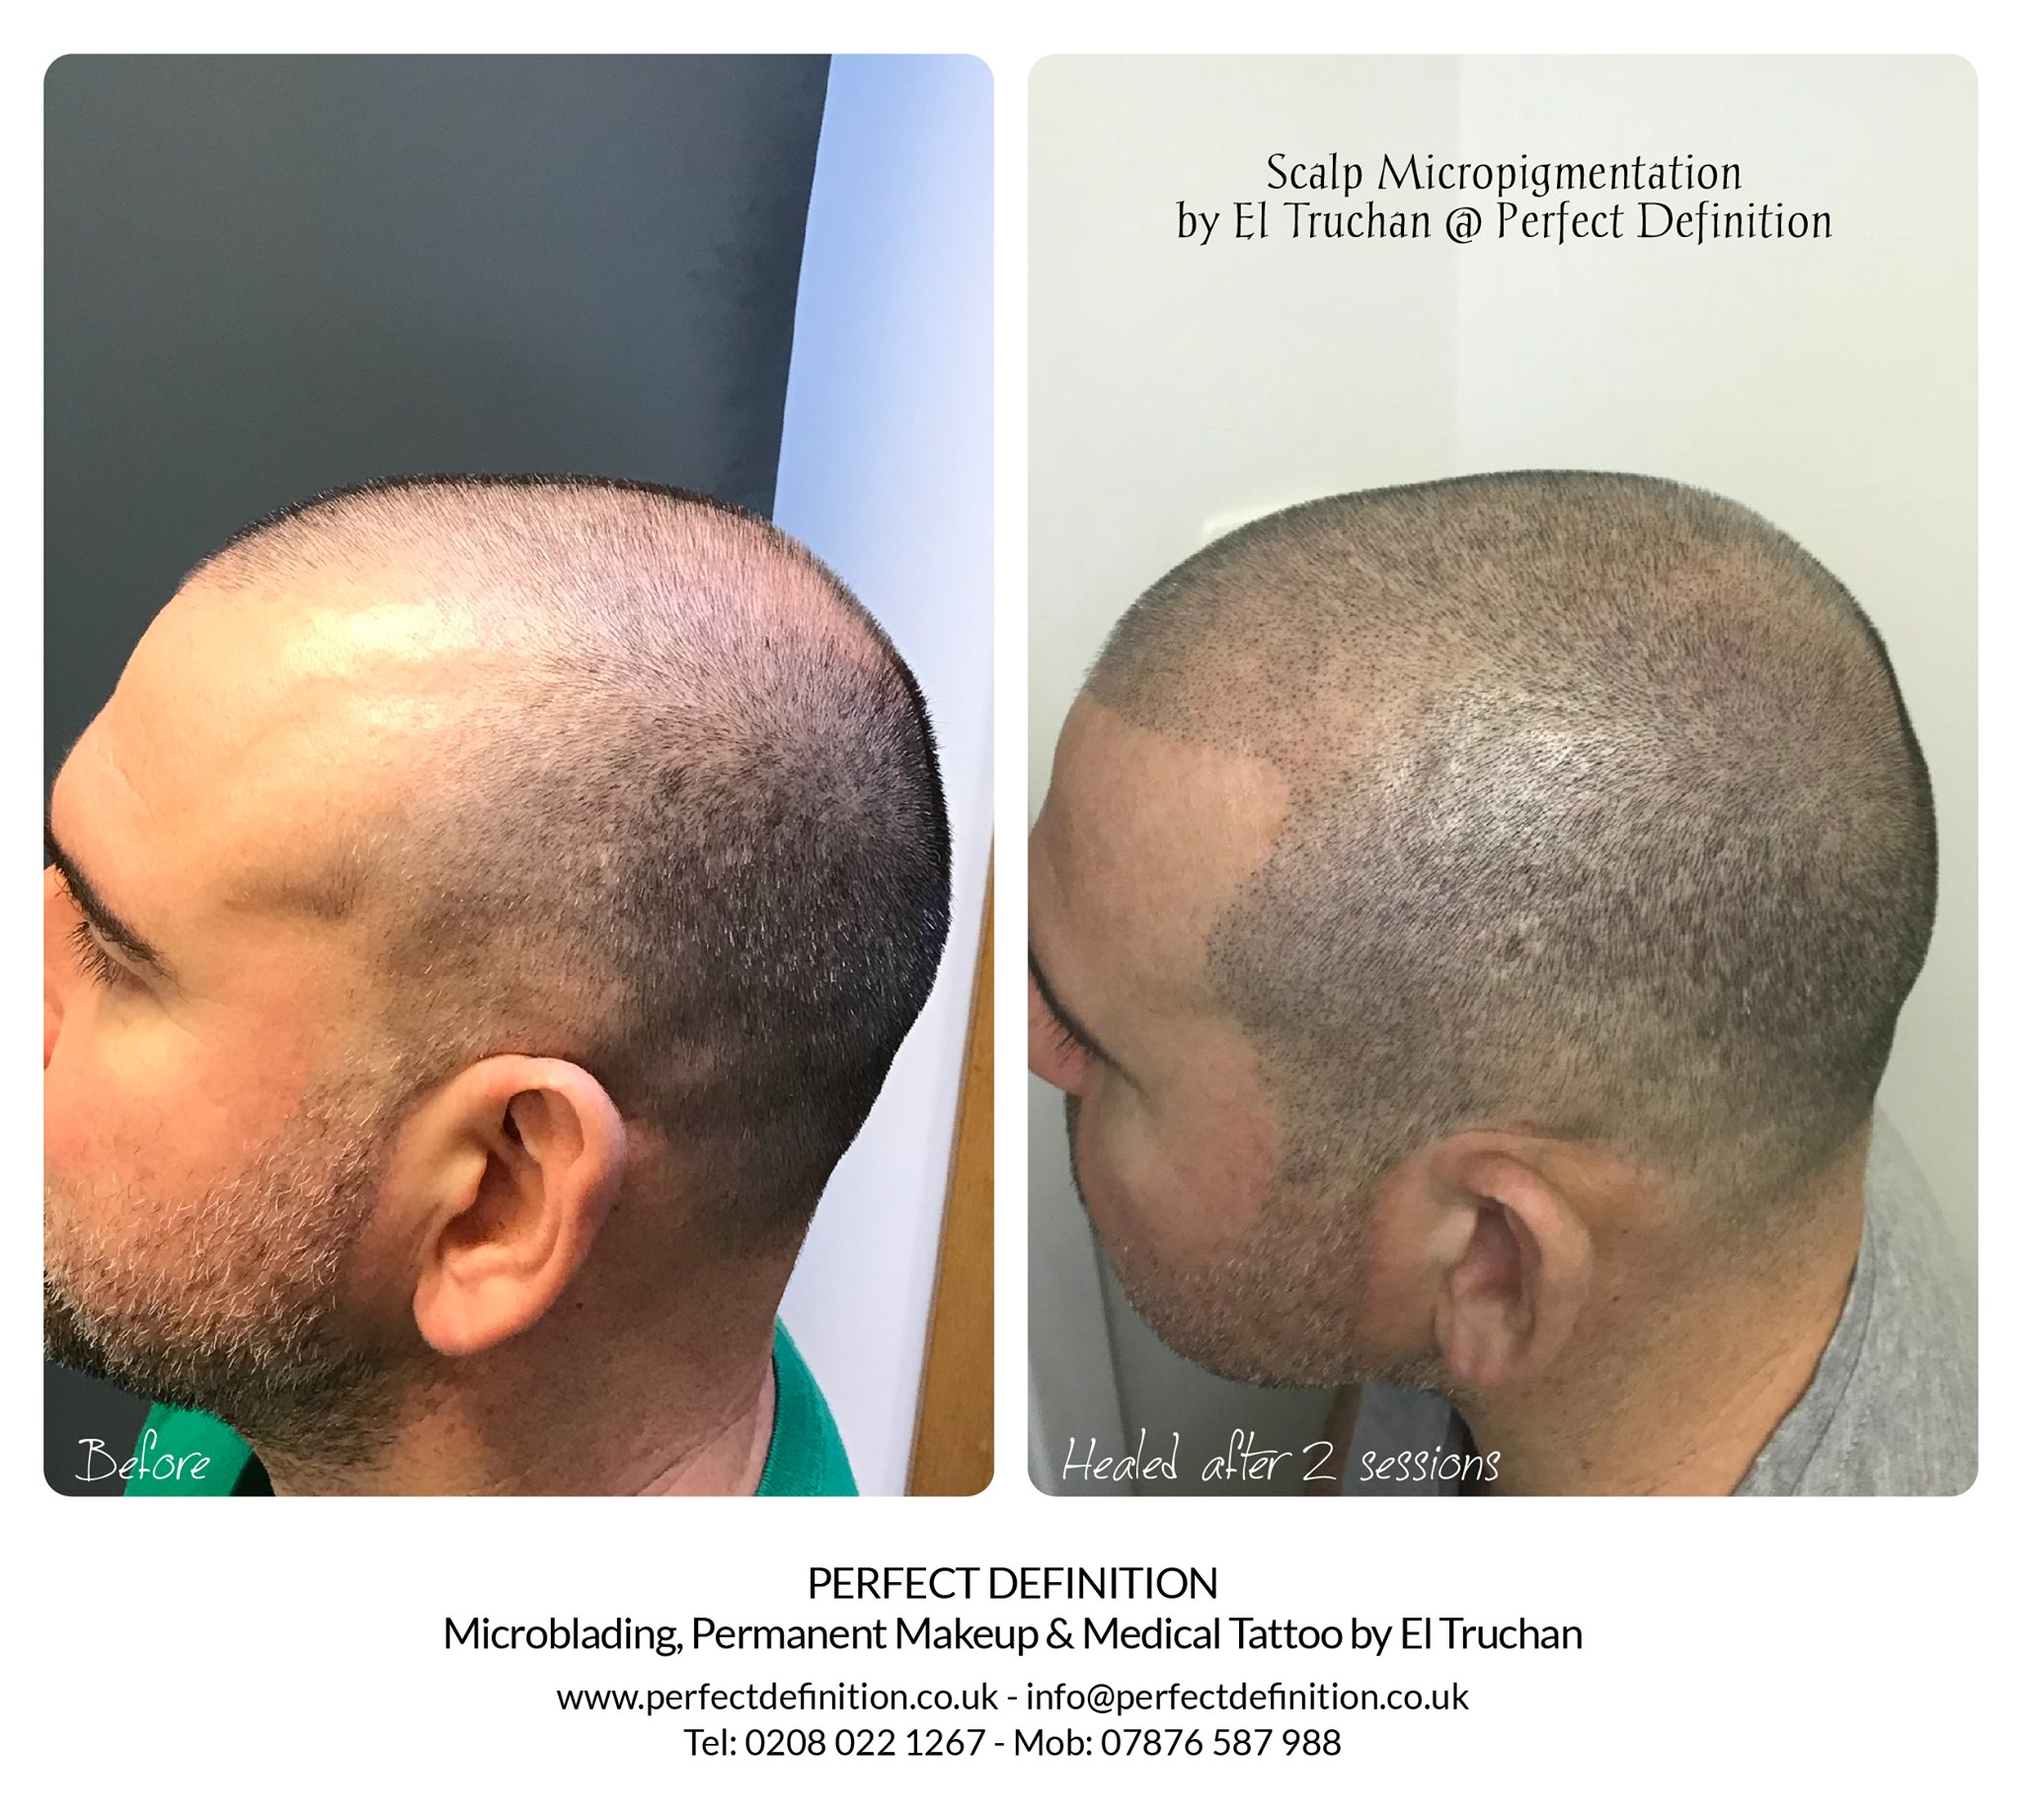 Scalp Micropigmentation SMP by El Trucha